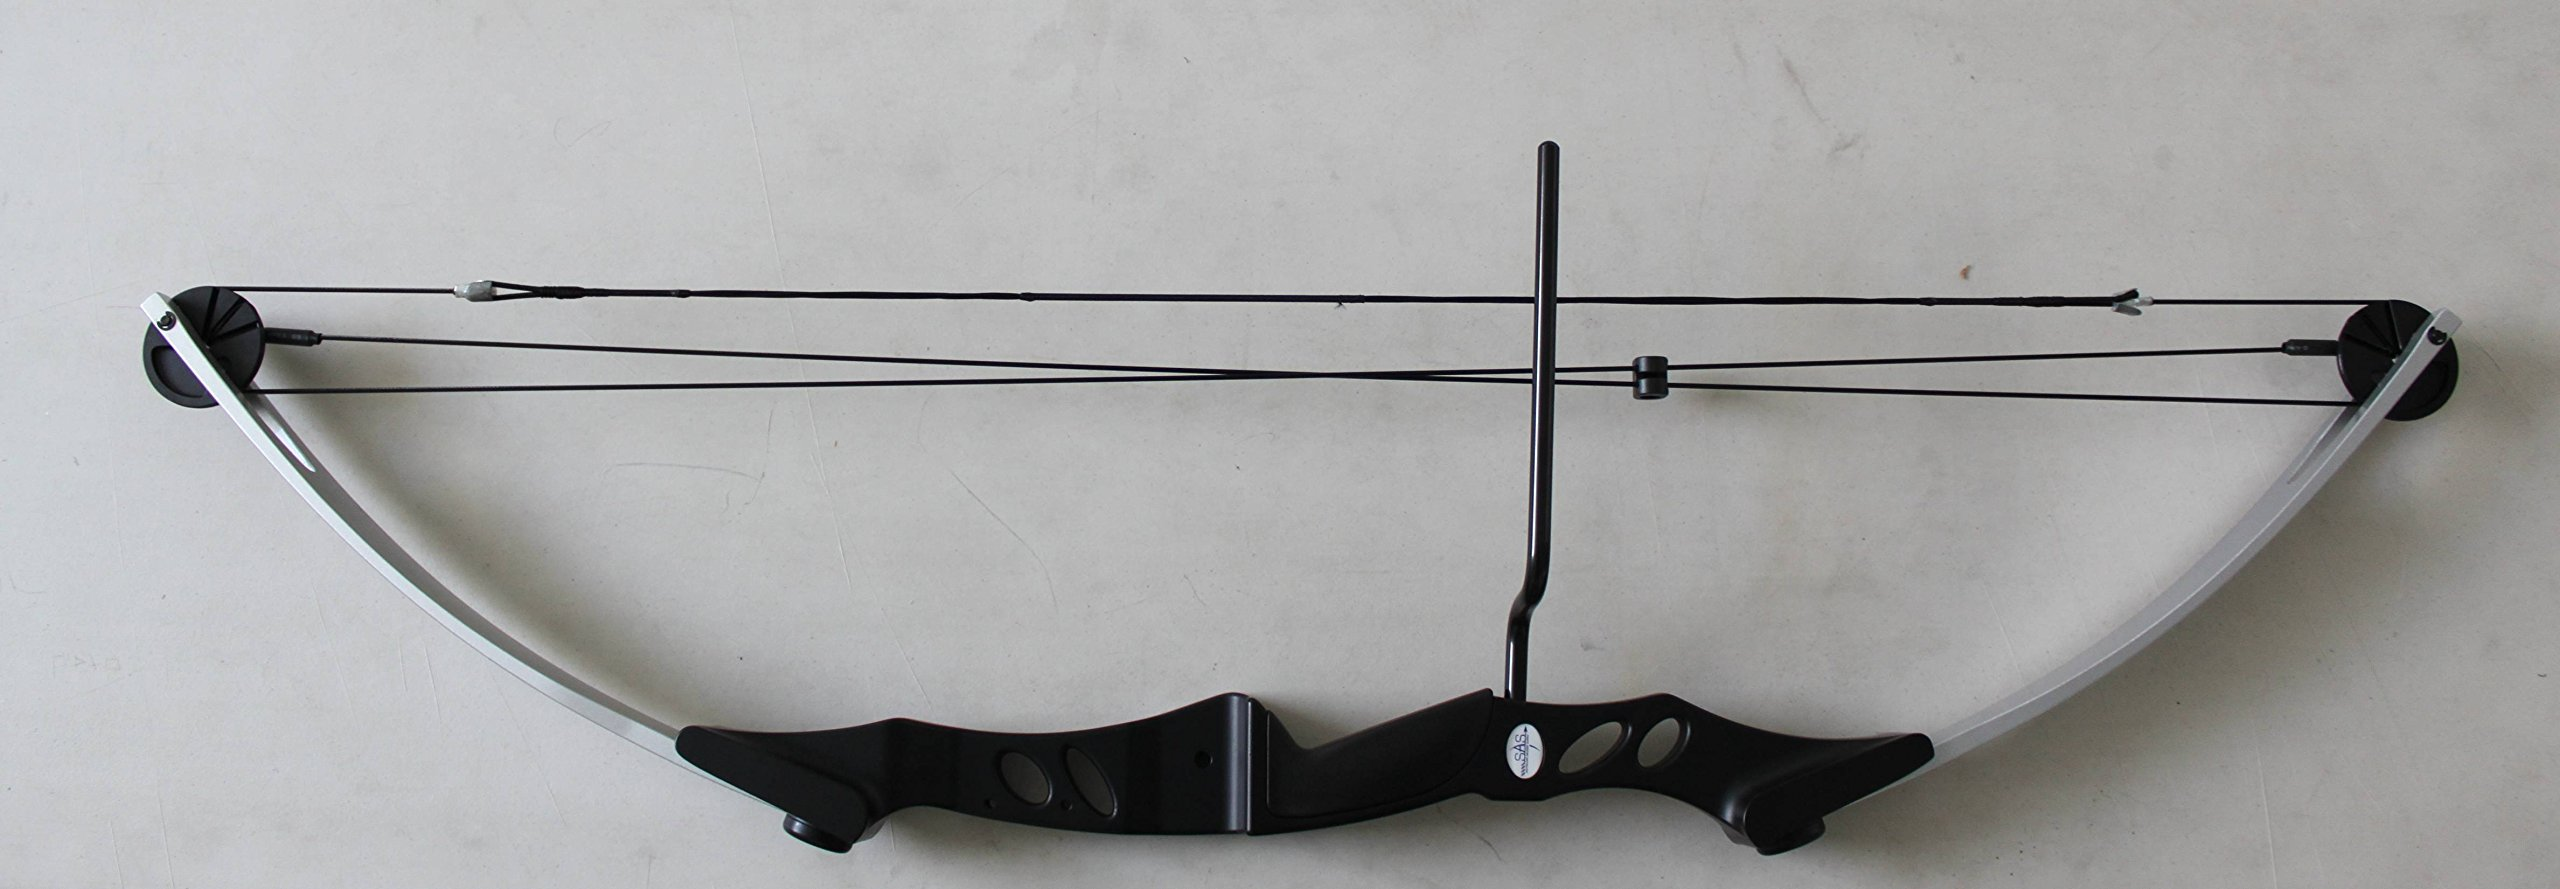 SAS Siege 55 lb Compound Bow w/ 5-Spot Paper Target - Silver/Black with Accessories by Siege